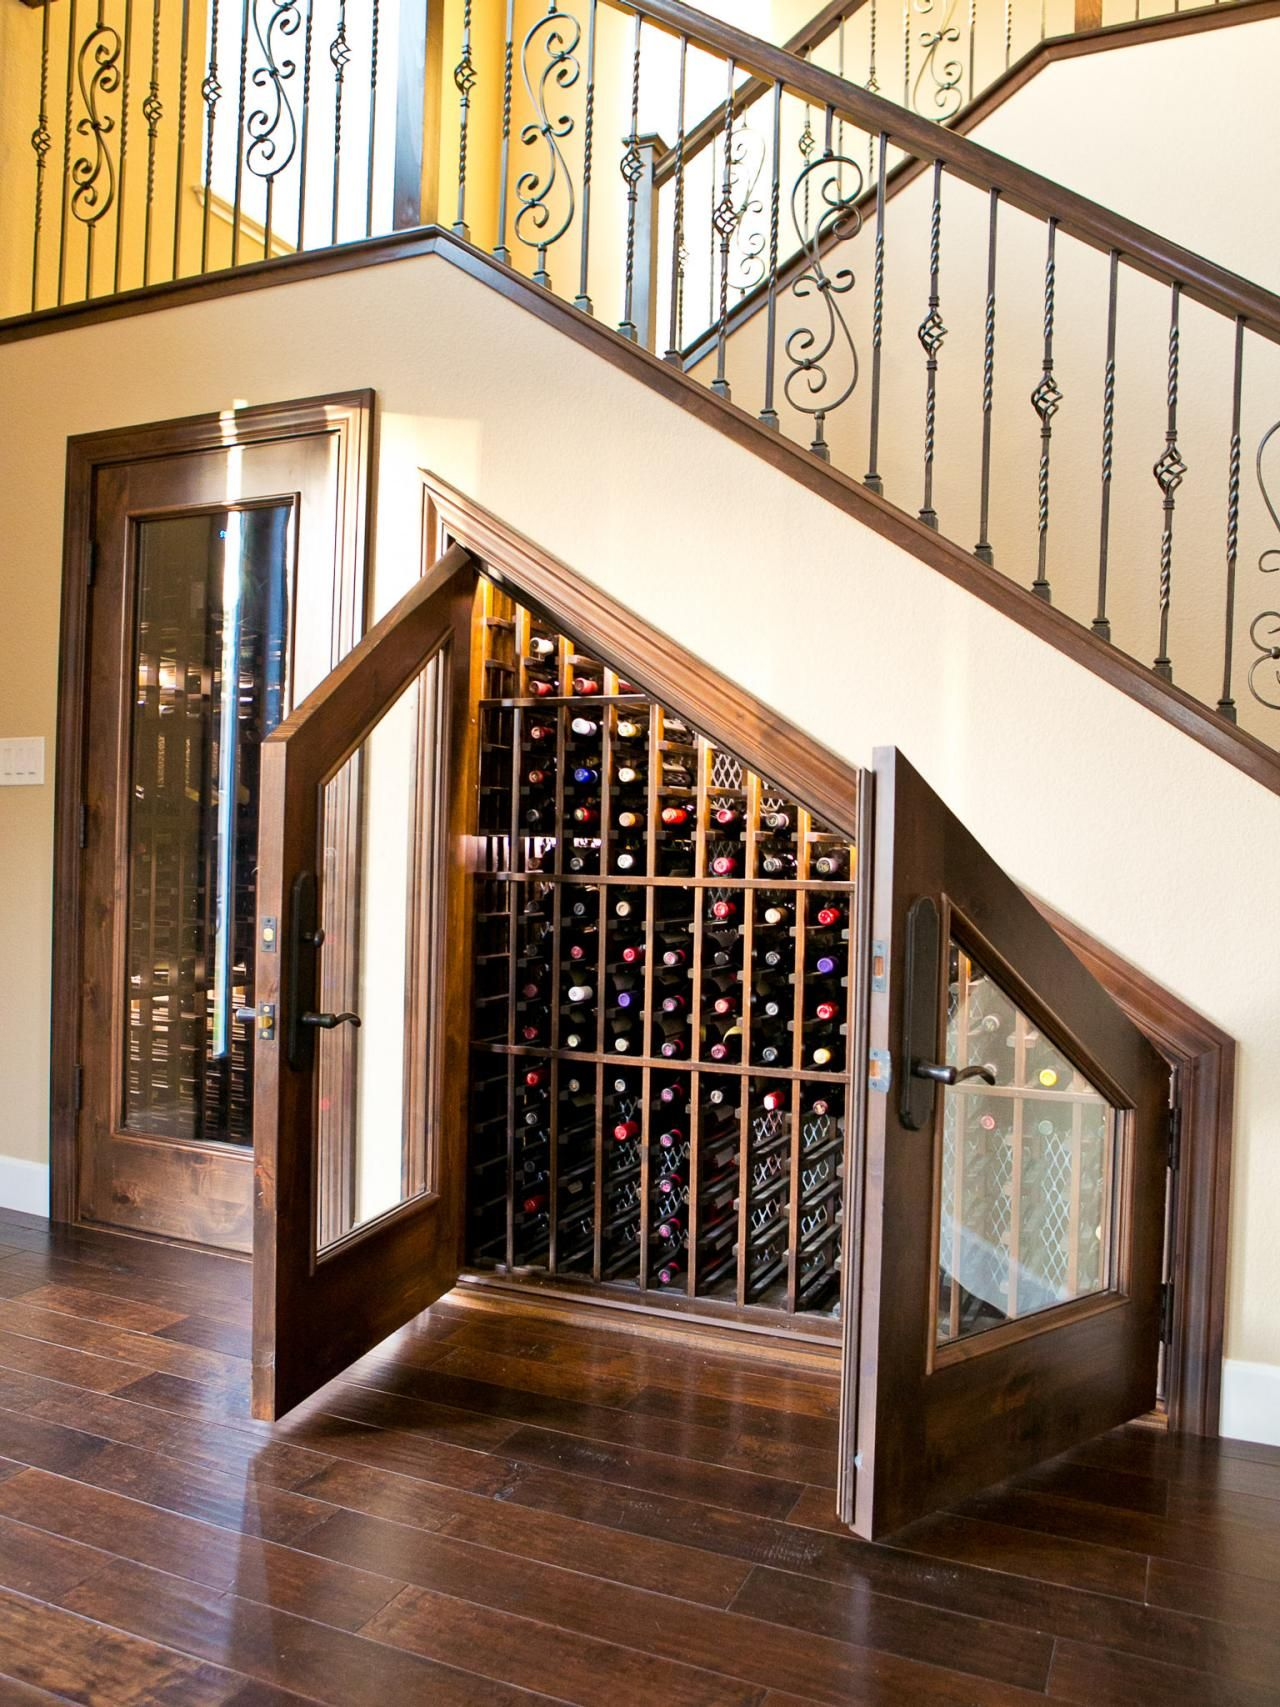 15 creative wine racks and wine storage ideas house design ideas pinterest under stairs. Black Bedroom Furniture Sets. Home Design Ideas